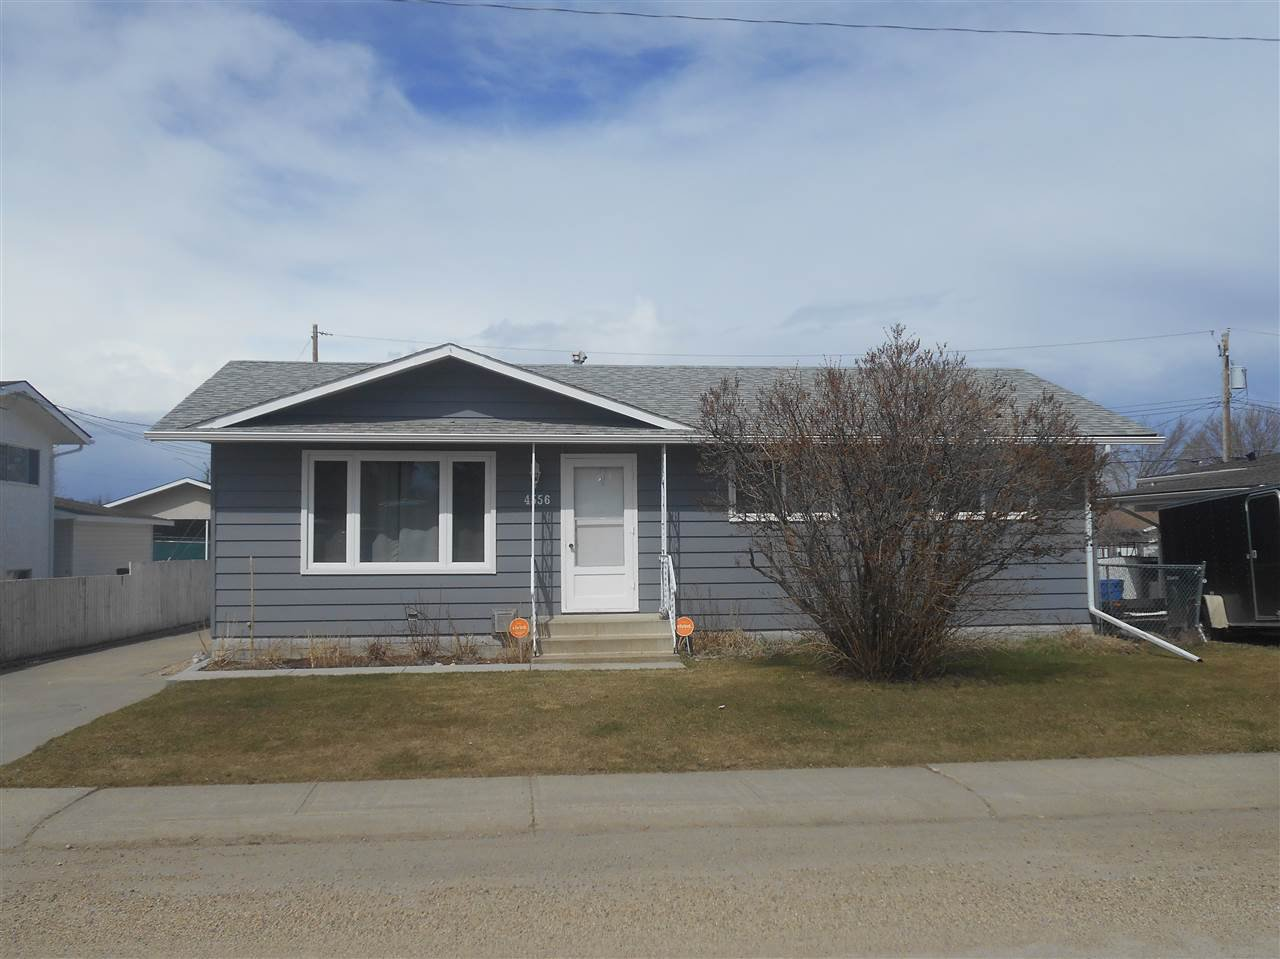 Main Photo: 4556 43 Avenue: Drayton Valley House for sale : MLS®# E4195032